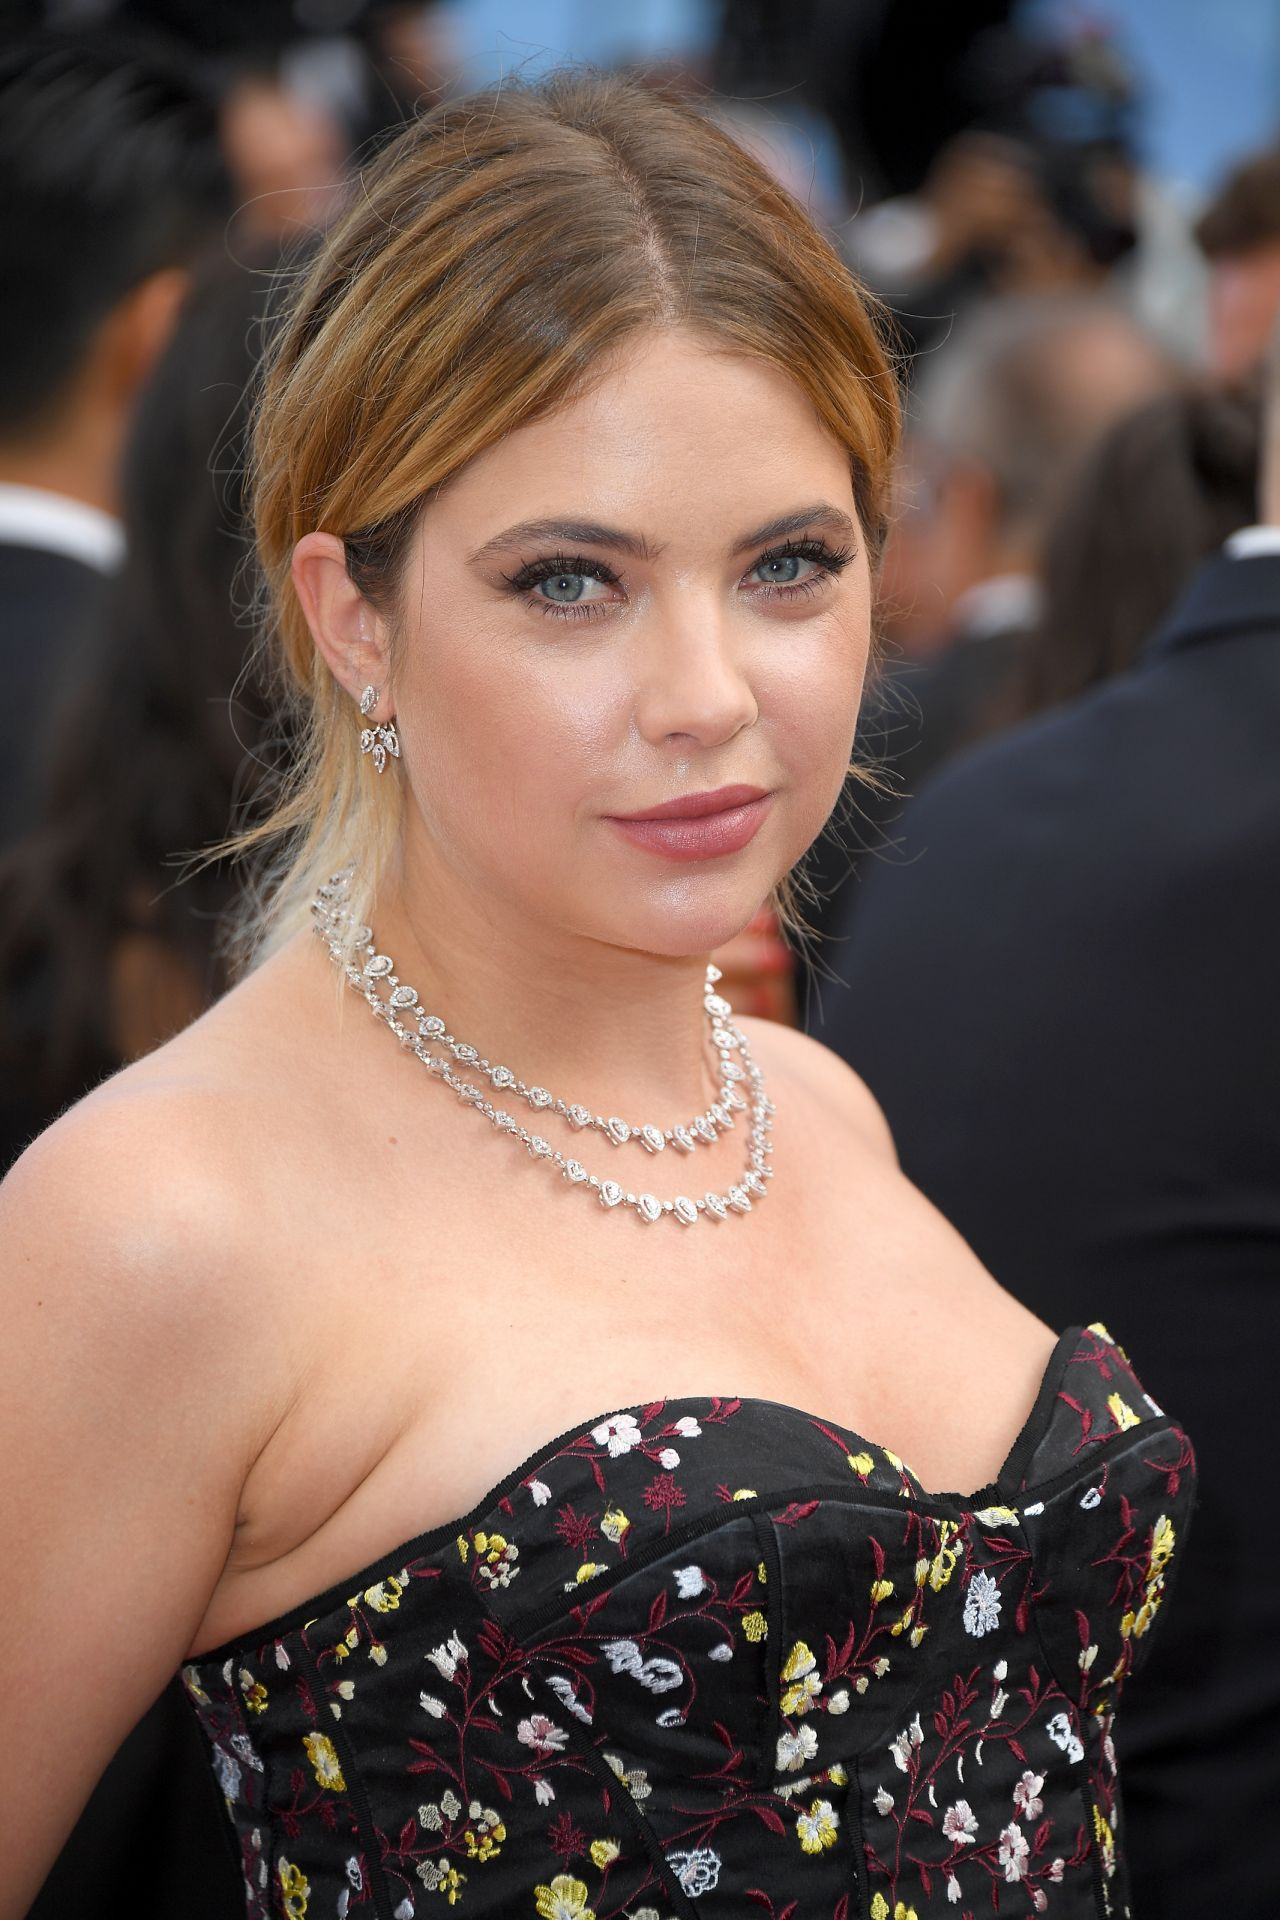 Ashley Benson photo #785182